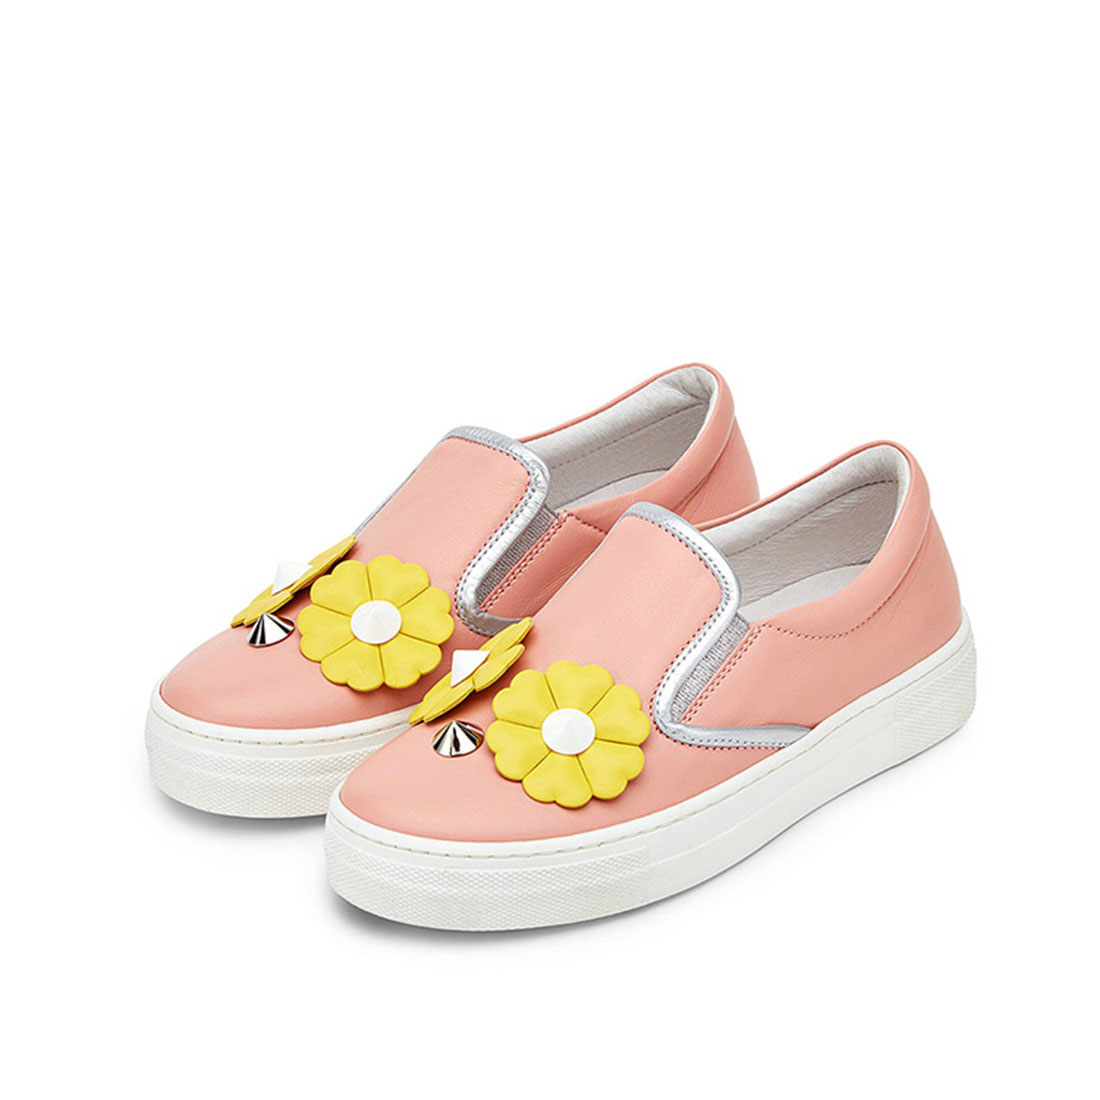 Leather upper pink flat round toe casual fashion flower walking shoes for girls